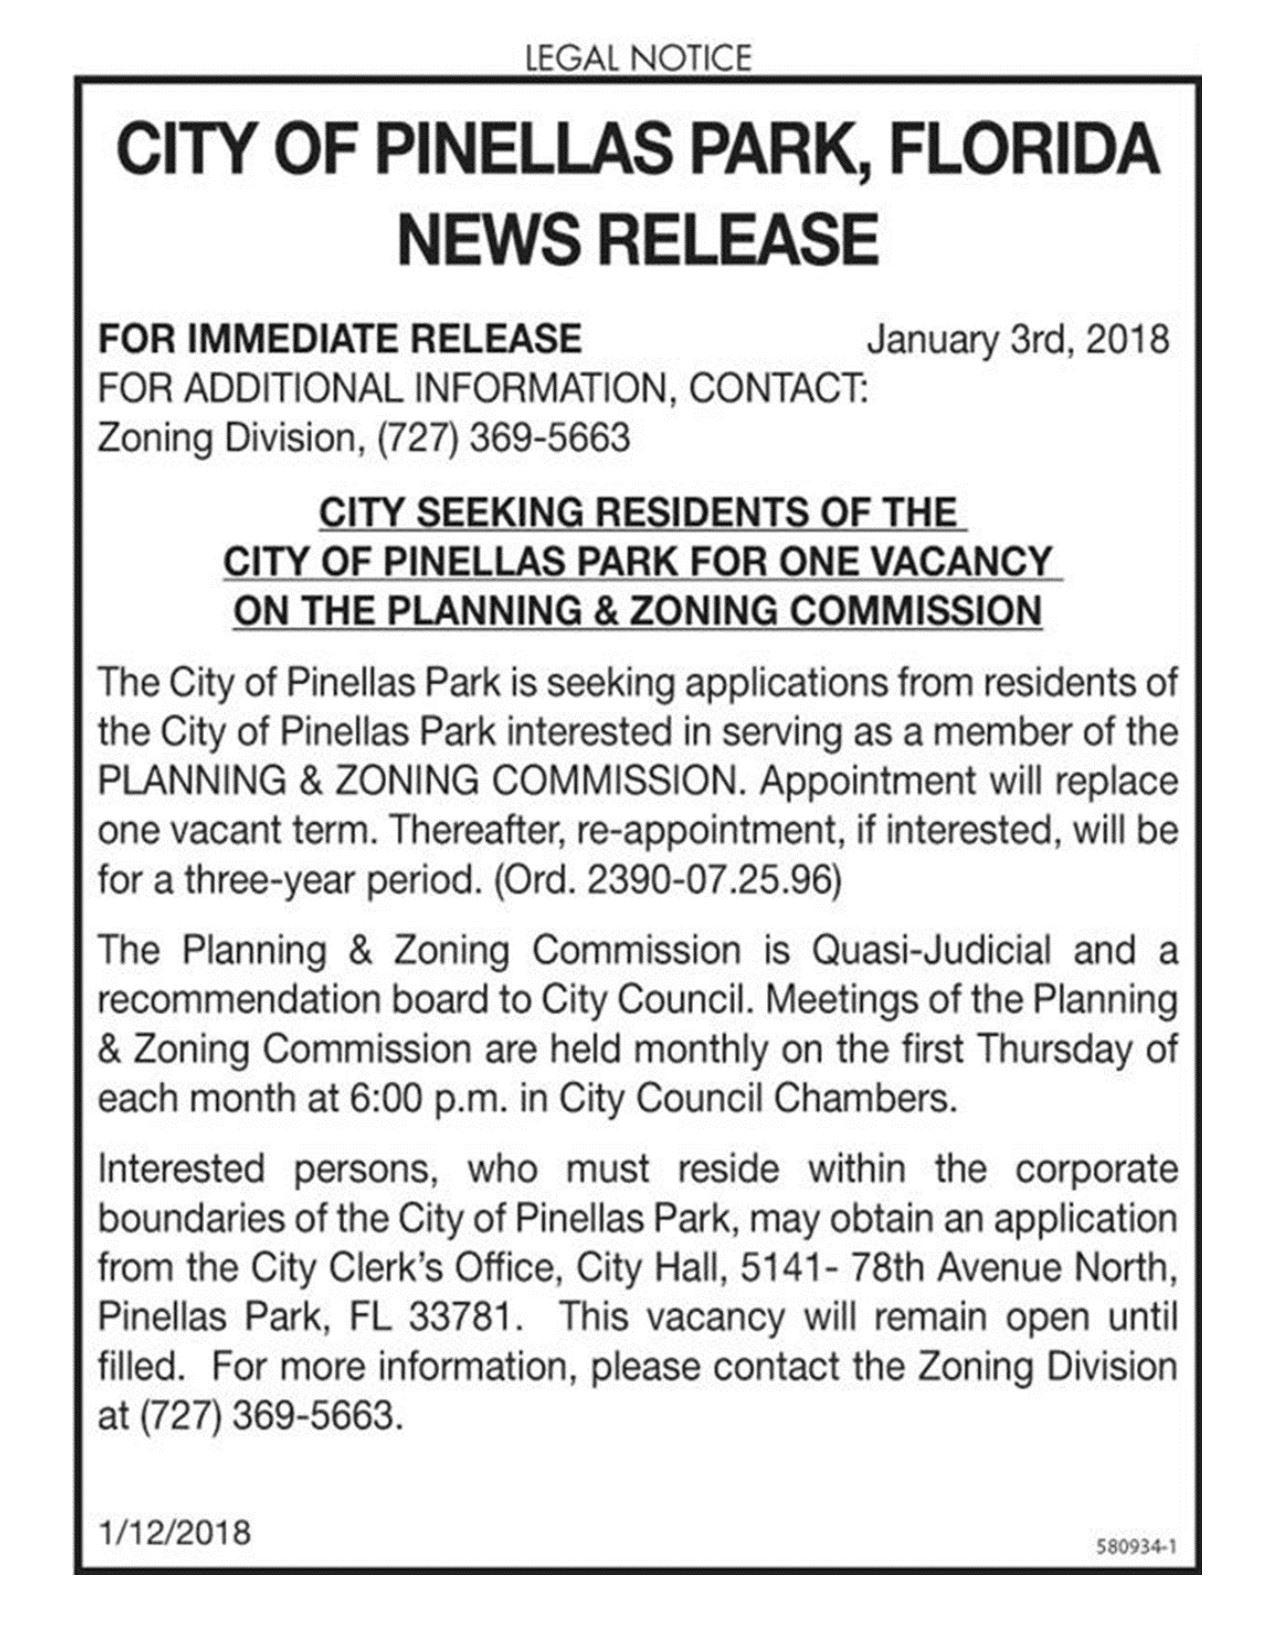 CITY OF PINELLAS PARK NEWS RELEASE_VACANCY ON P&Z BOARD